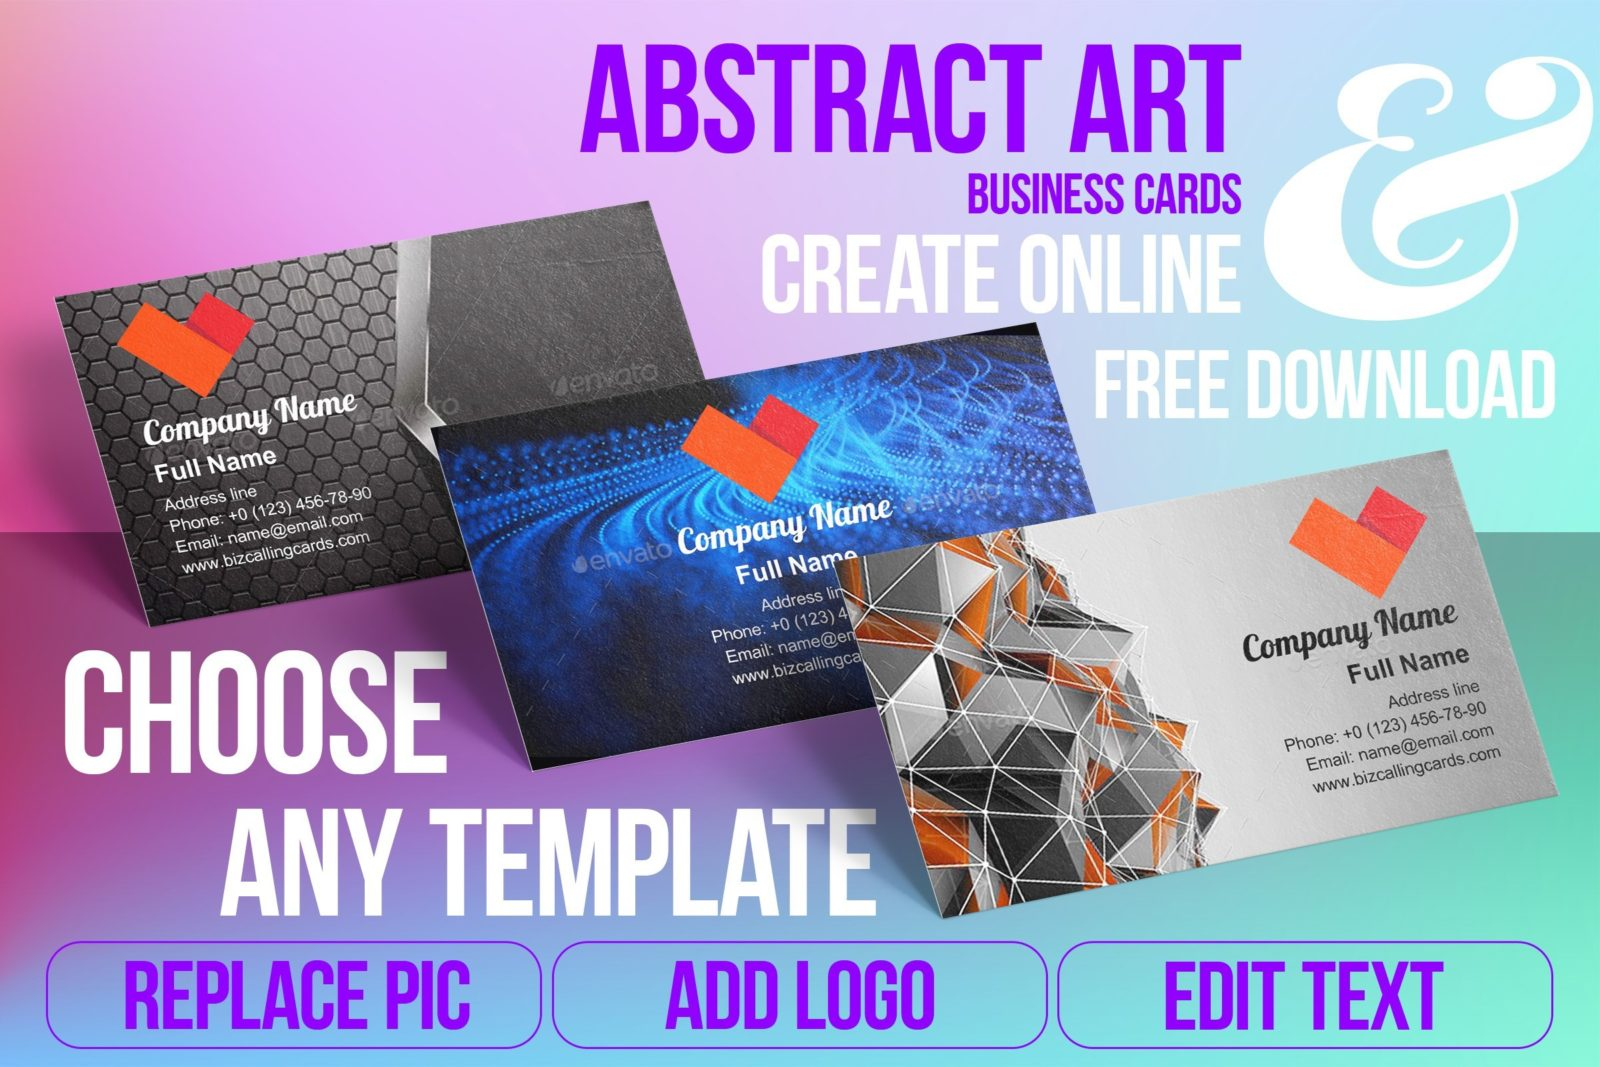 Business Card Templates For Abstract Art Free Download